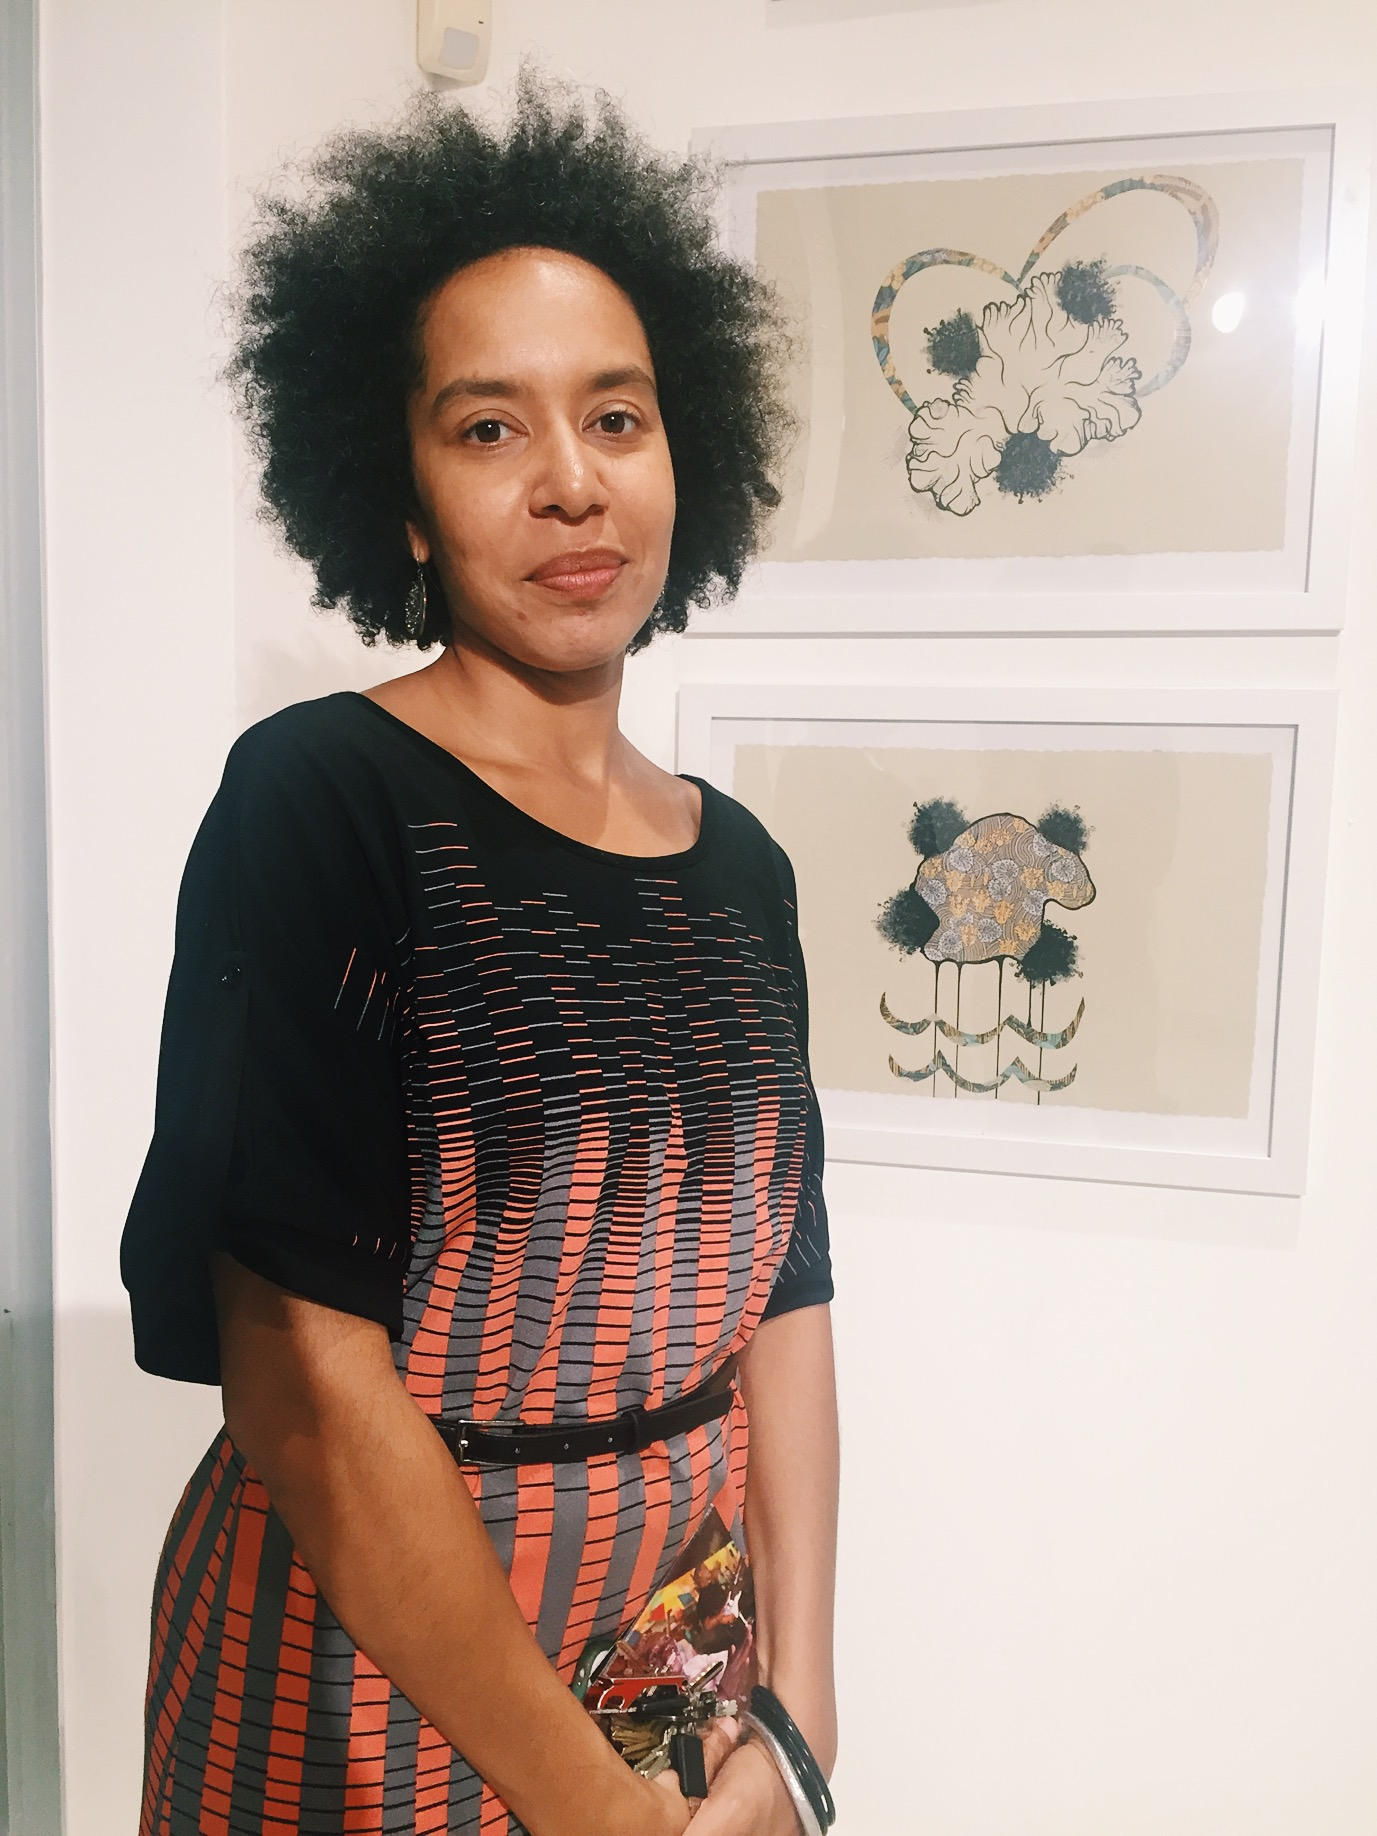 Maria Vickles, curator for the Little Haiti Cultural Center